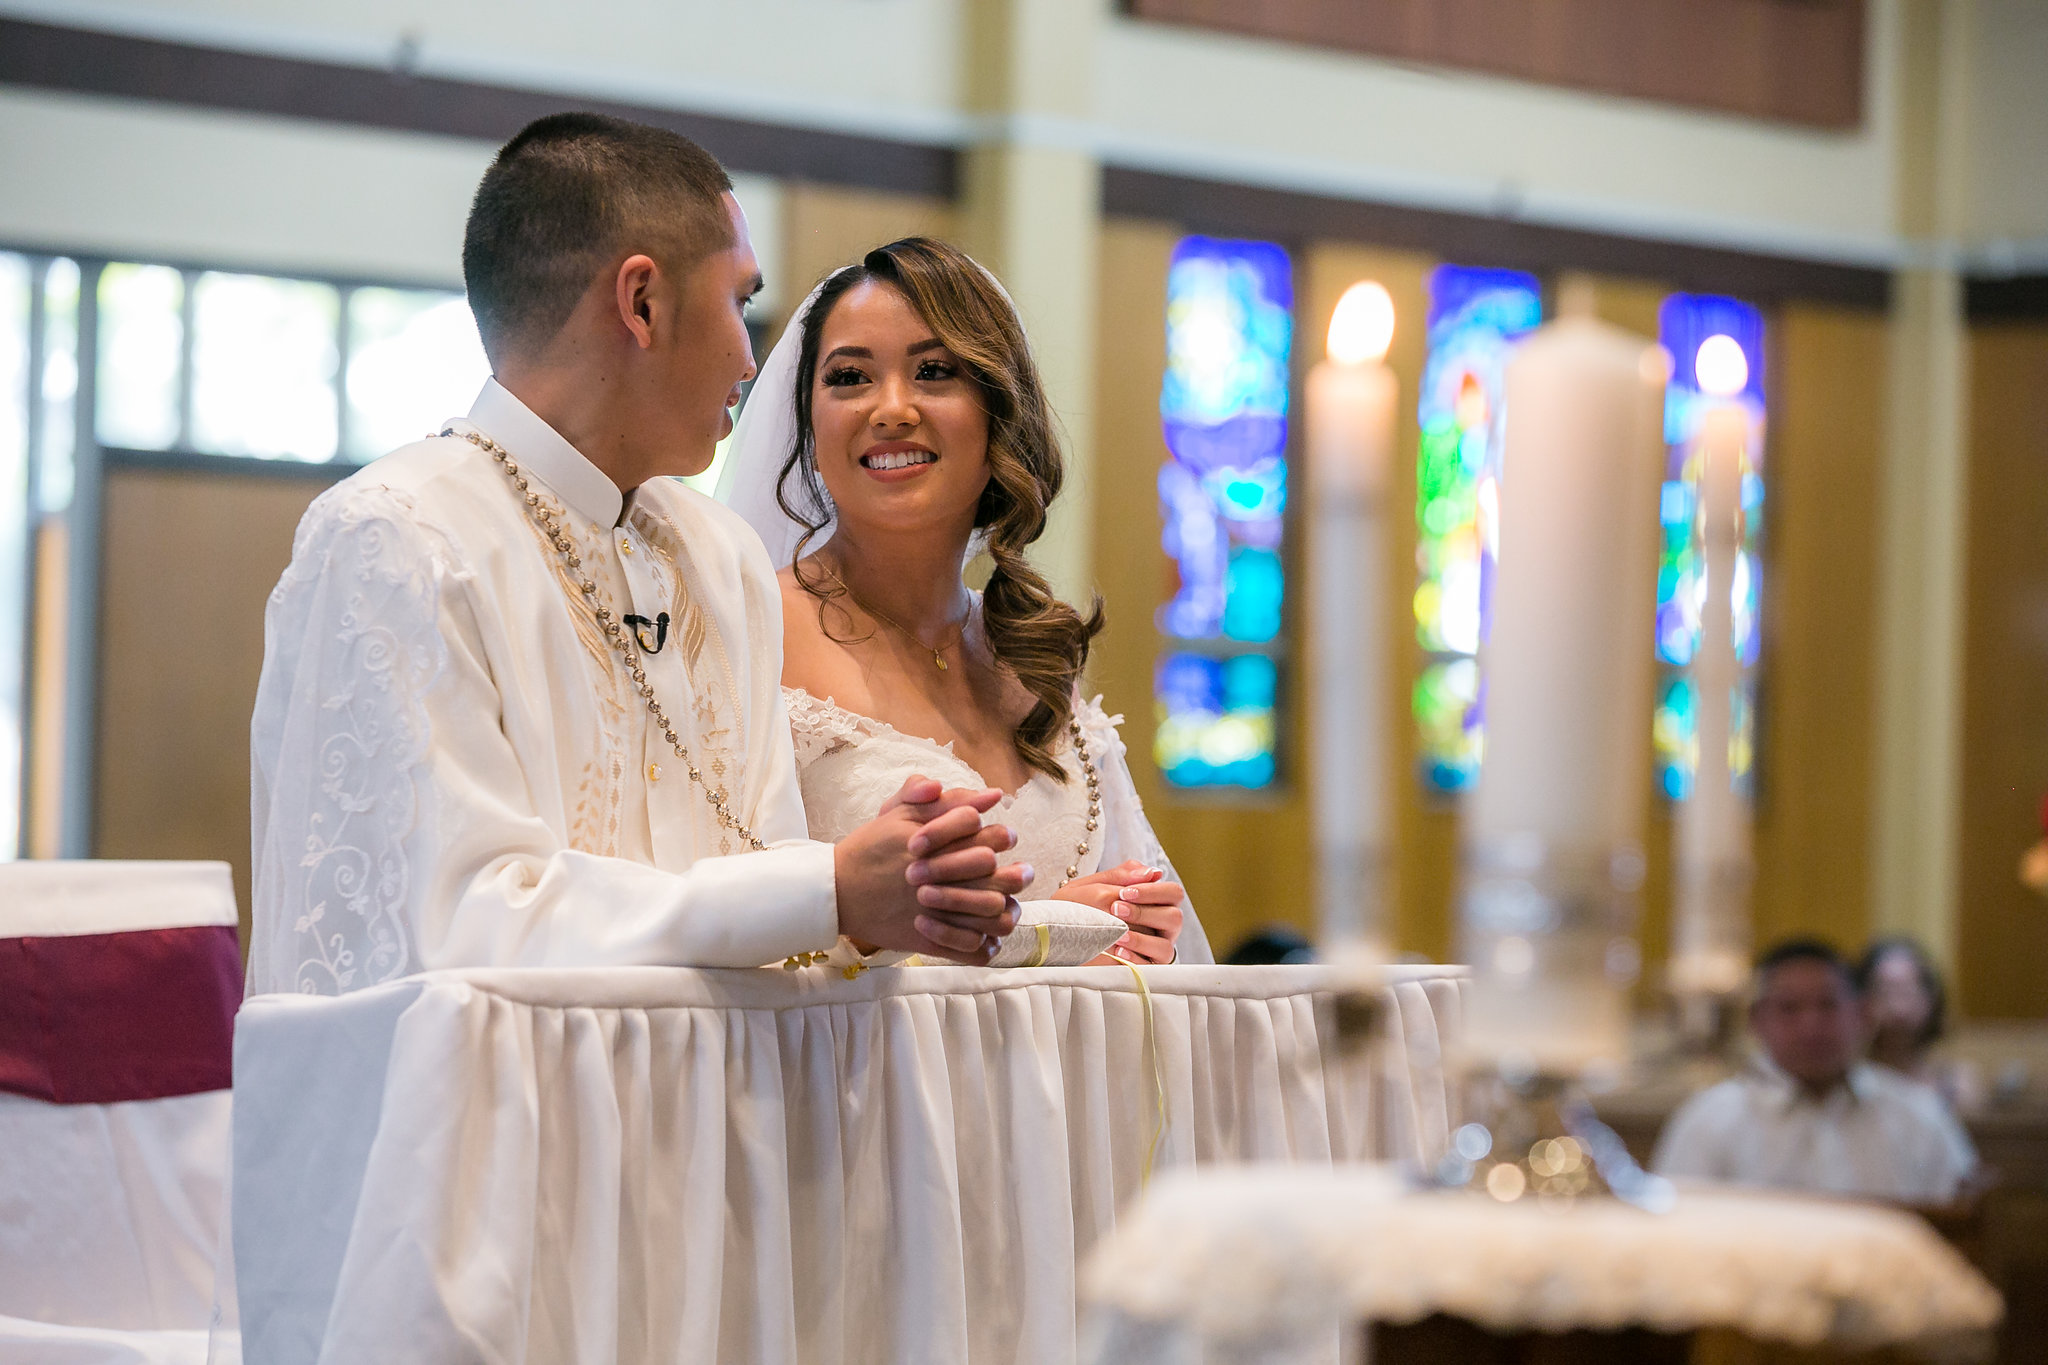 travis air force base wedding-5.jpg